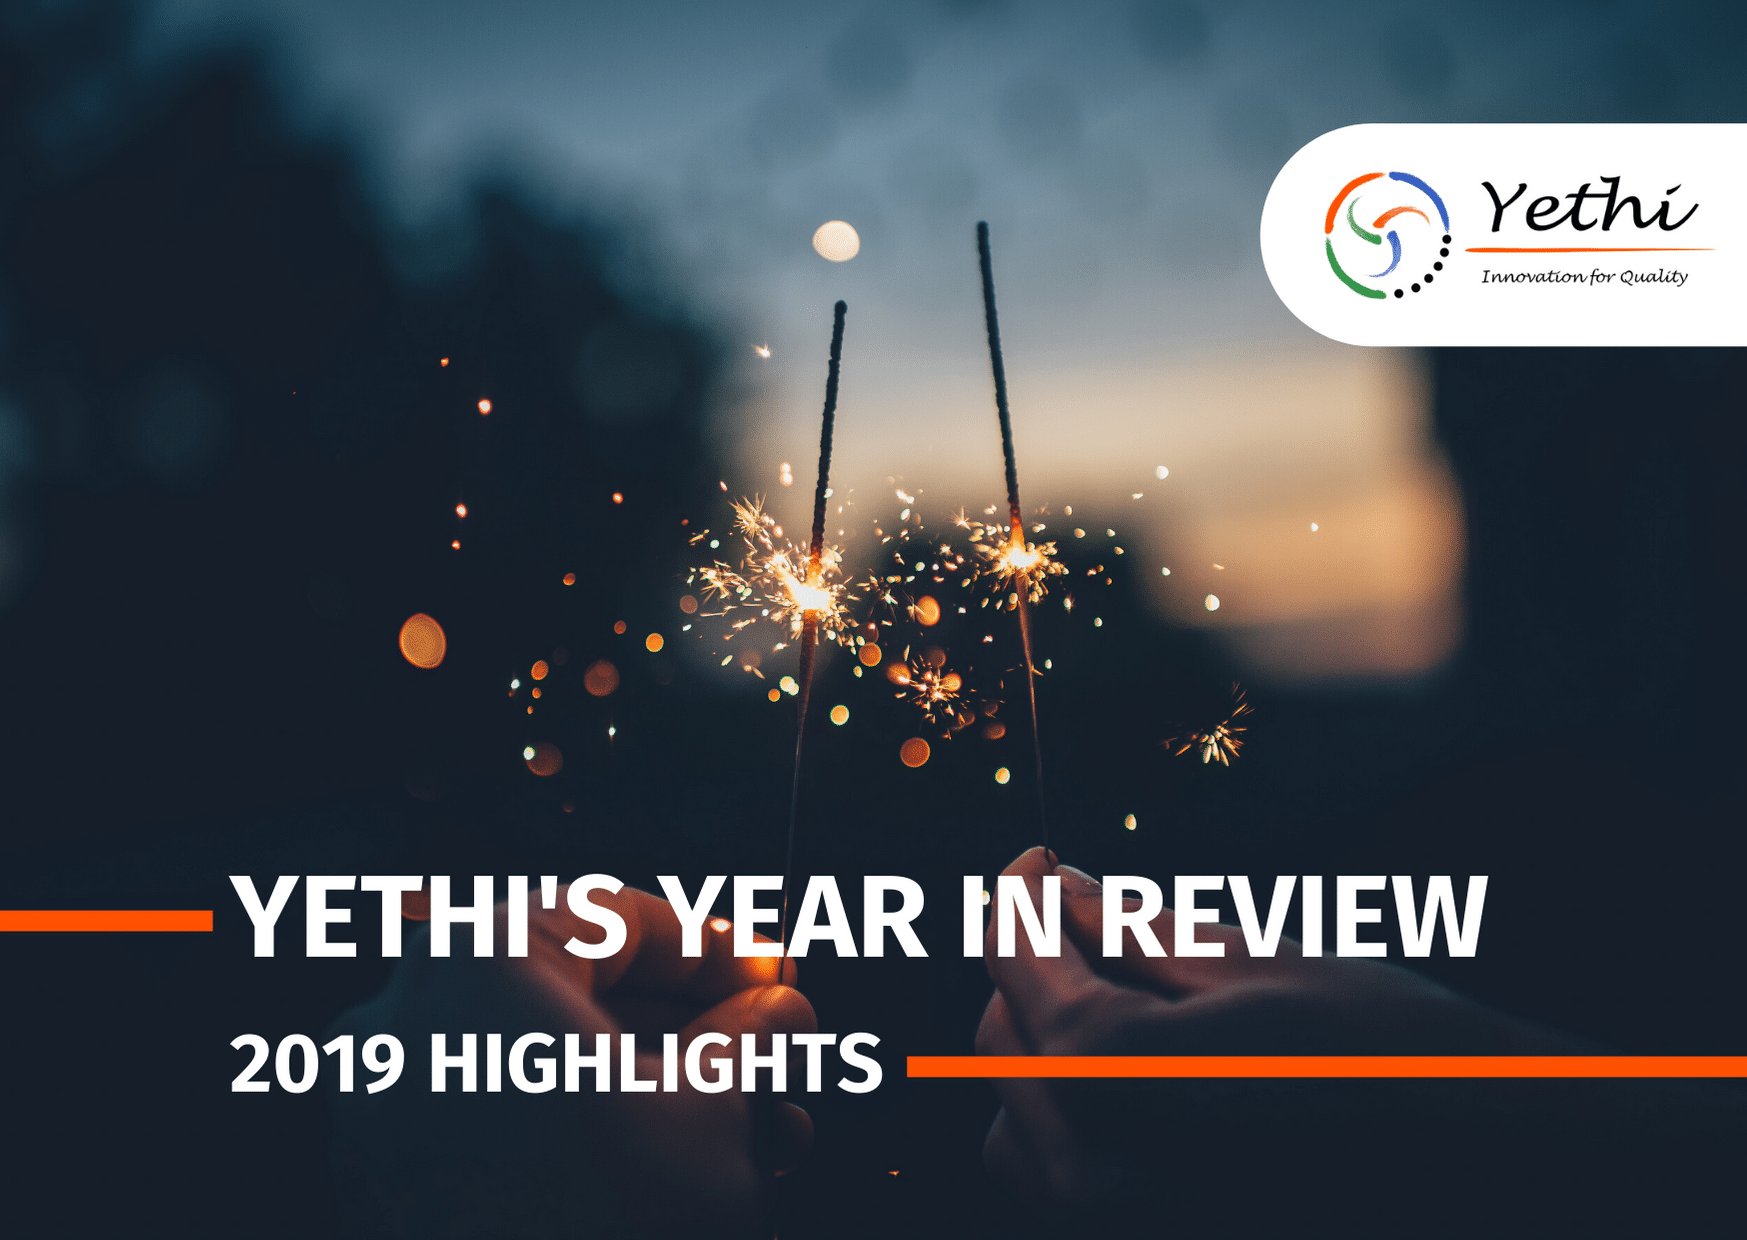 Yethi's Year n Review 2019 cover image